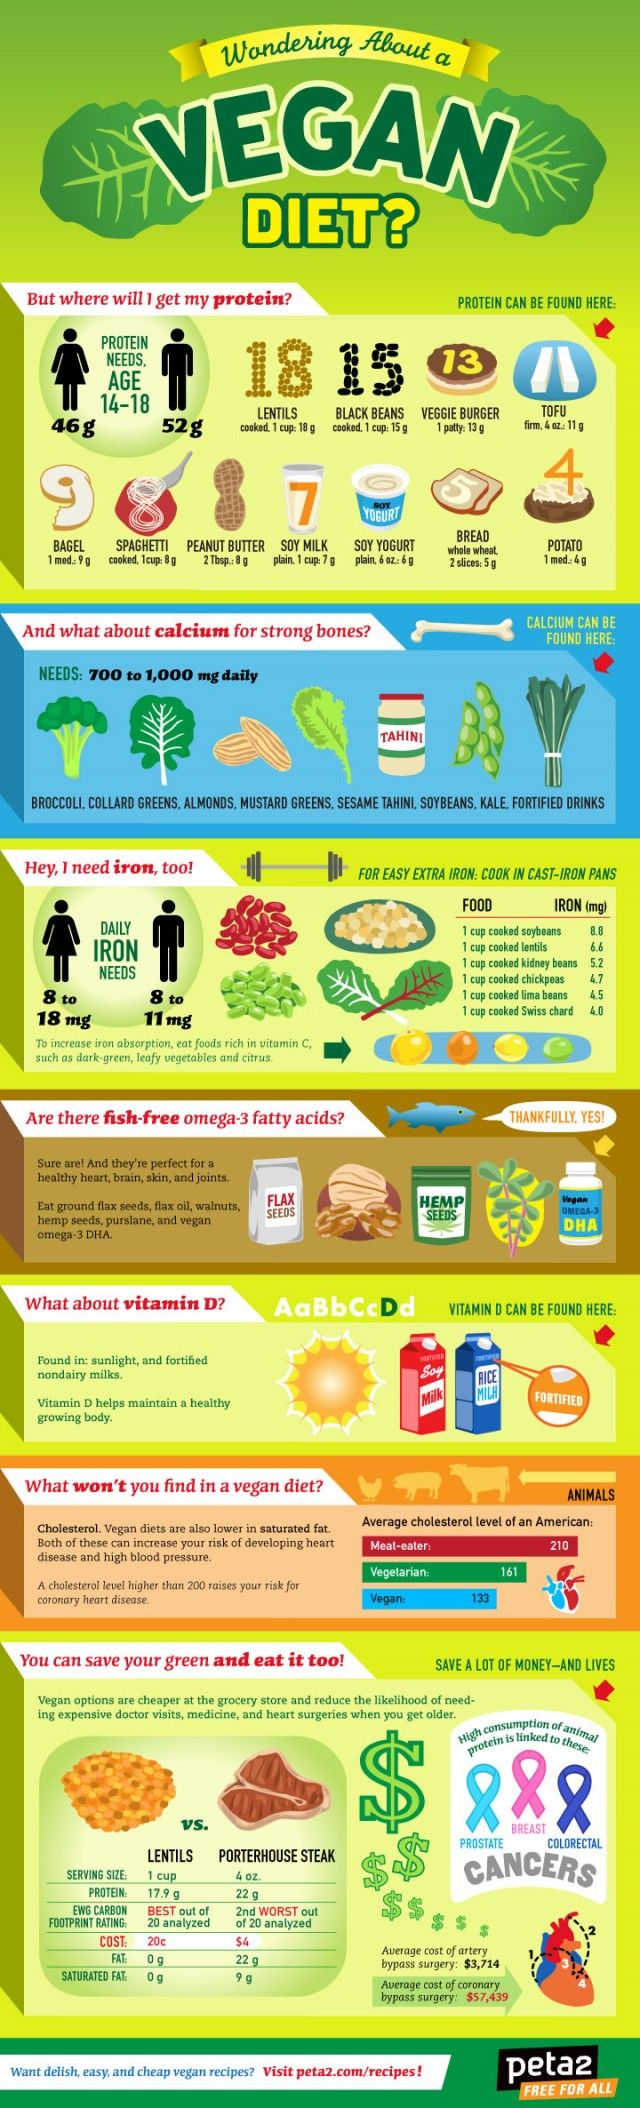 All You Need to Know About a Vegan Diet